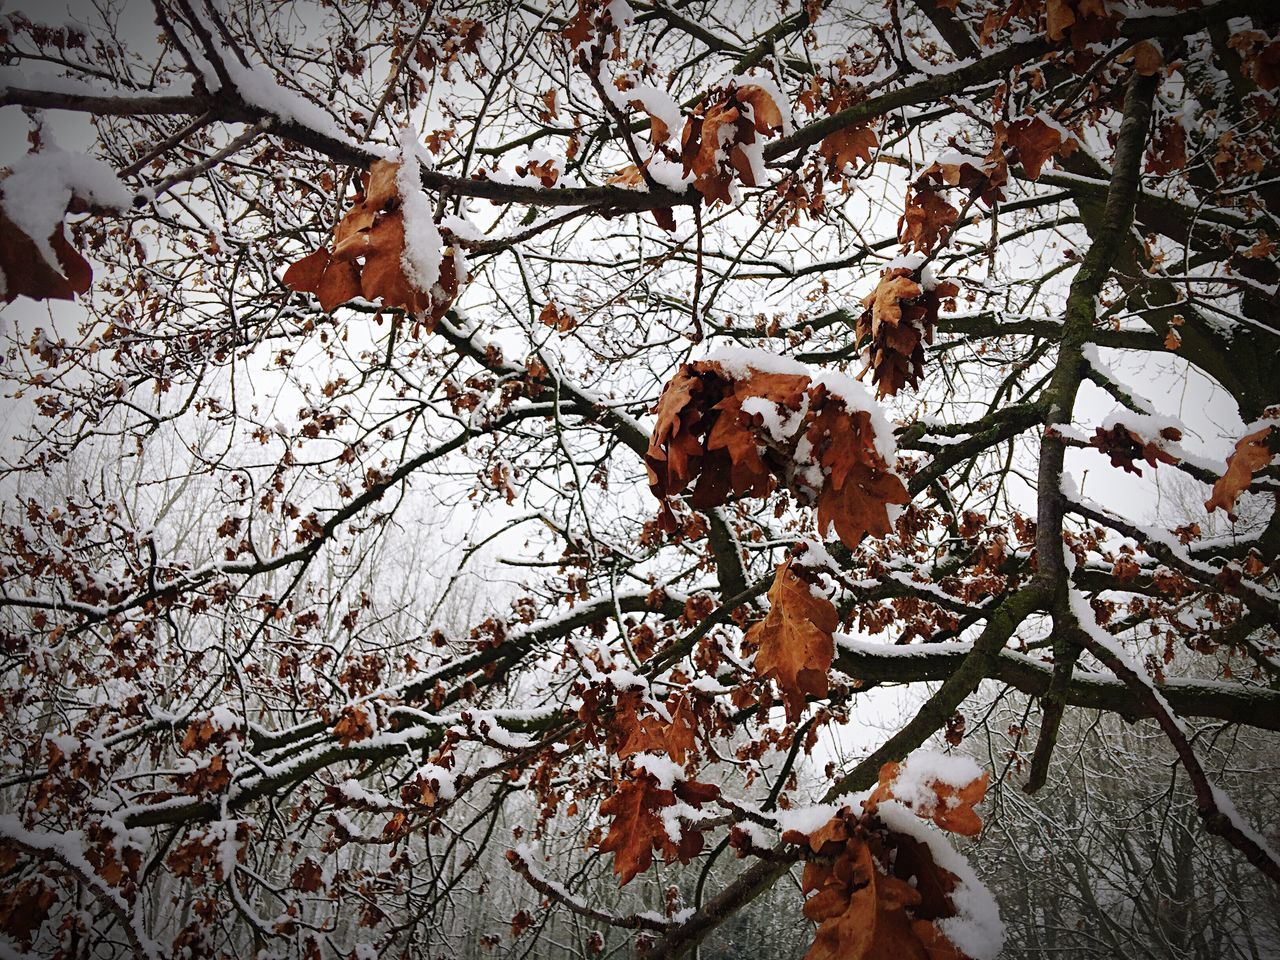 Heavily held the burden when winter snow falls Winter Trees Snow Trees Frozen Leaves Nature Beauty In Nature